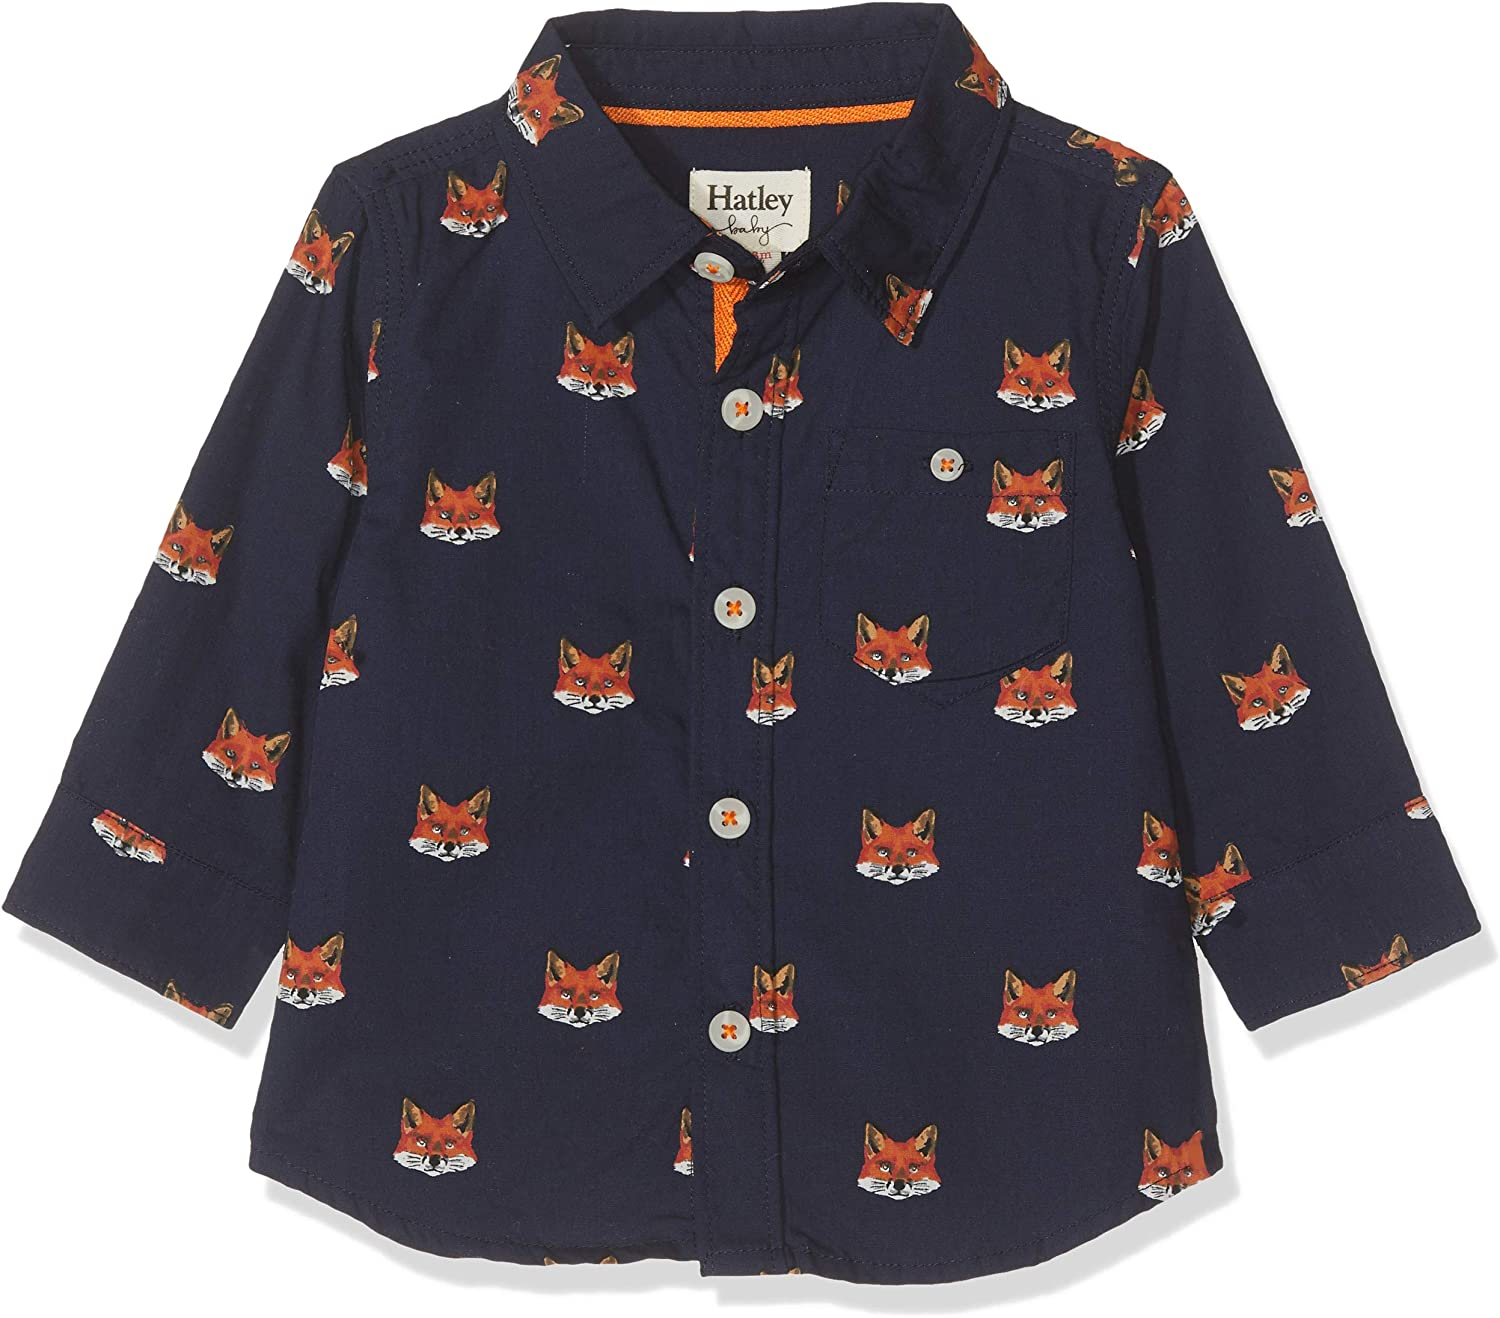 Hatley Baby Shirt Clever Fox